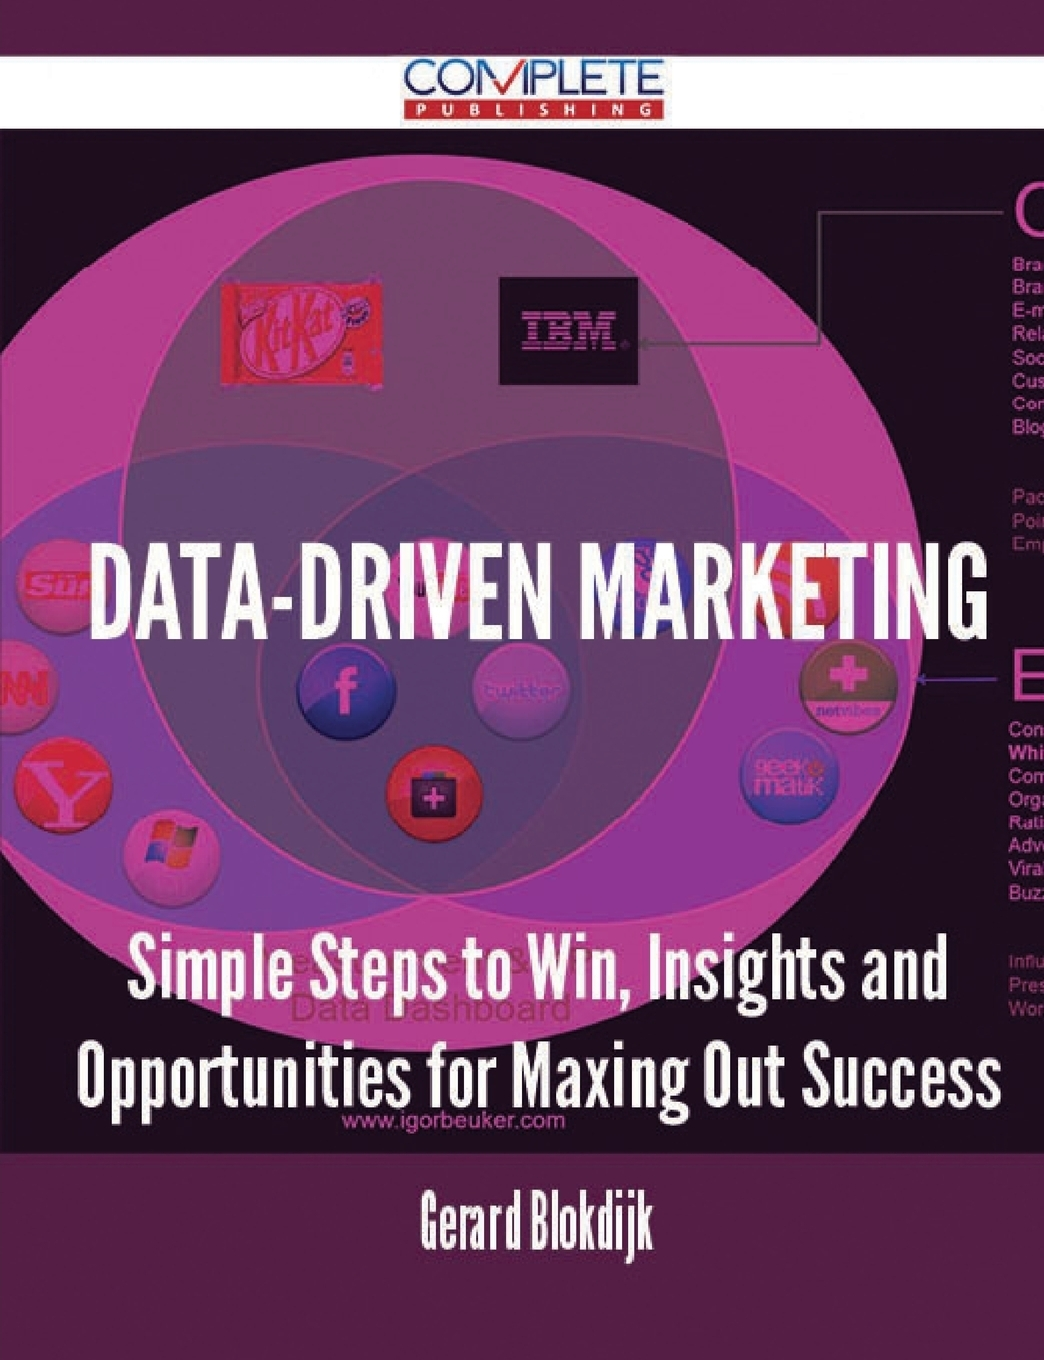 Data-Driven Marketing - Simple Steps to Win, Insights and Opportunities for Maxing Out Success. Gerard Blokdijk